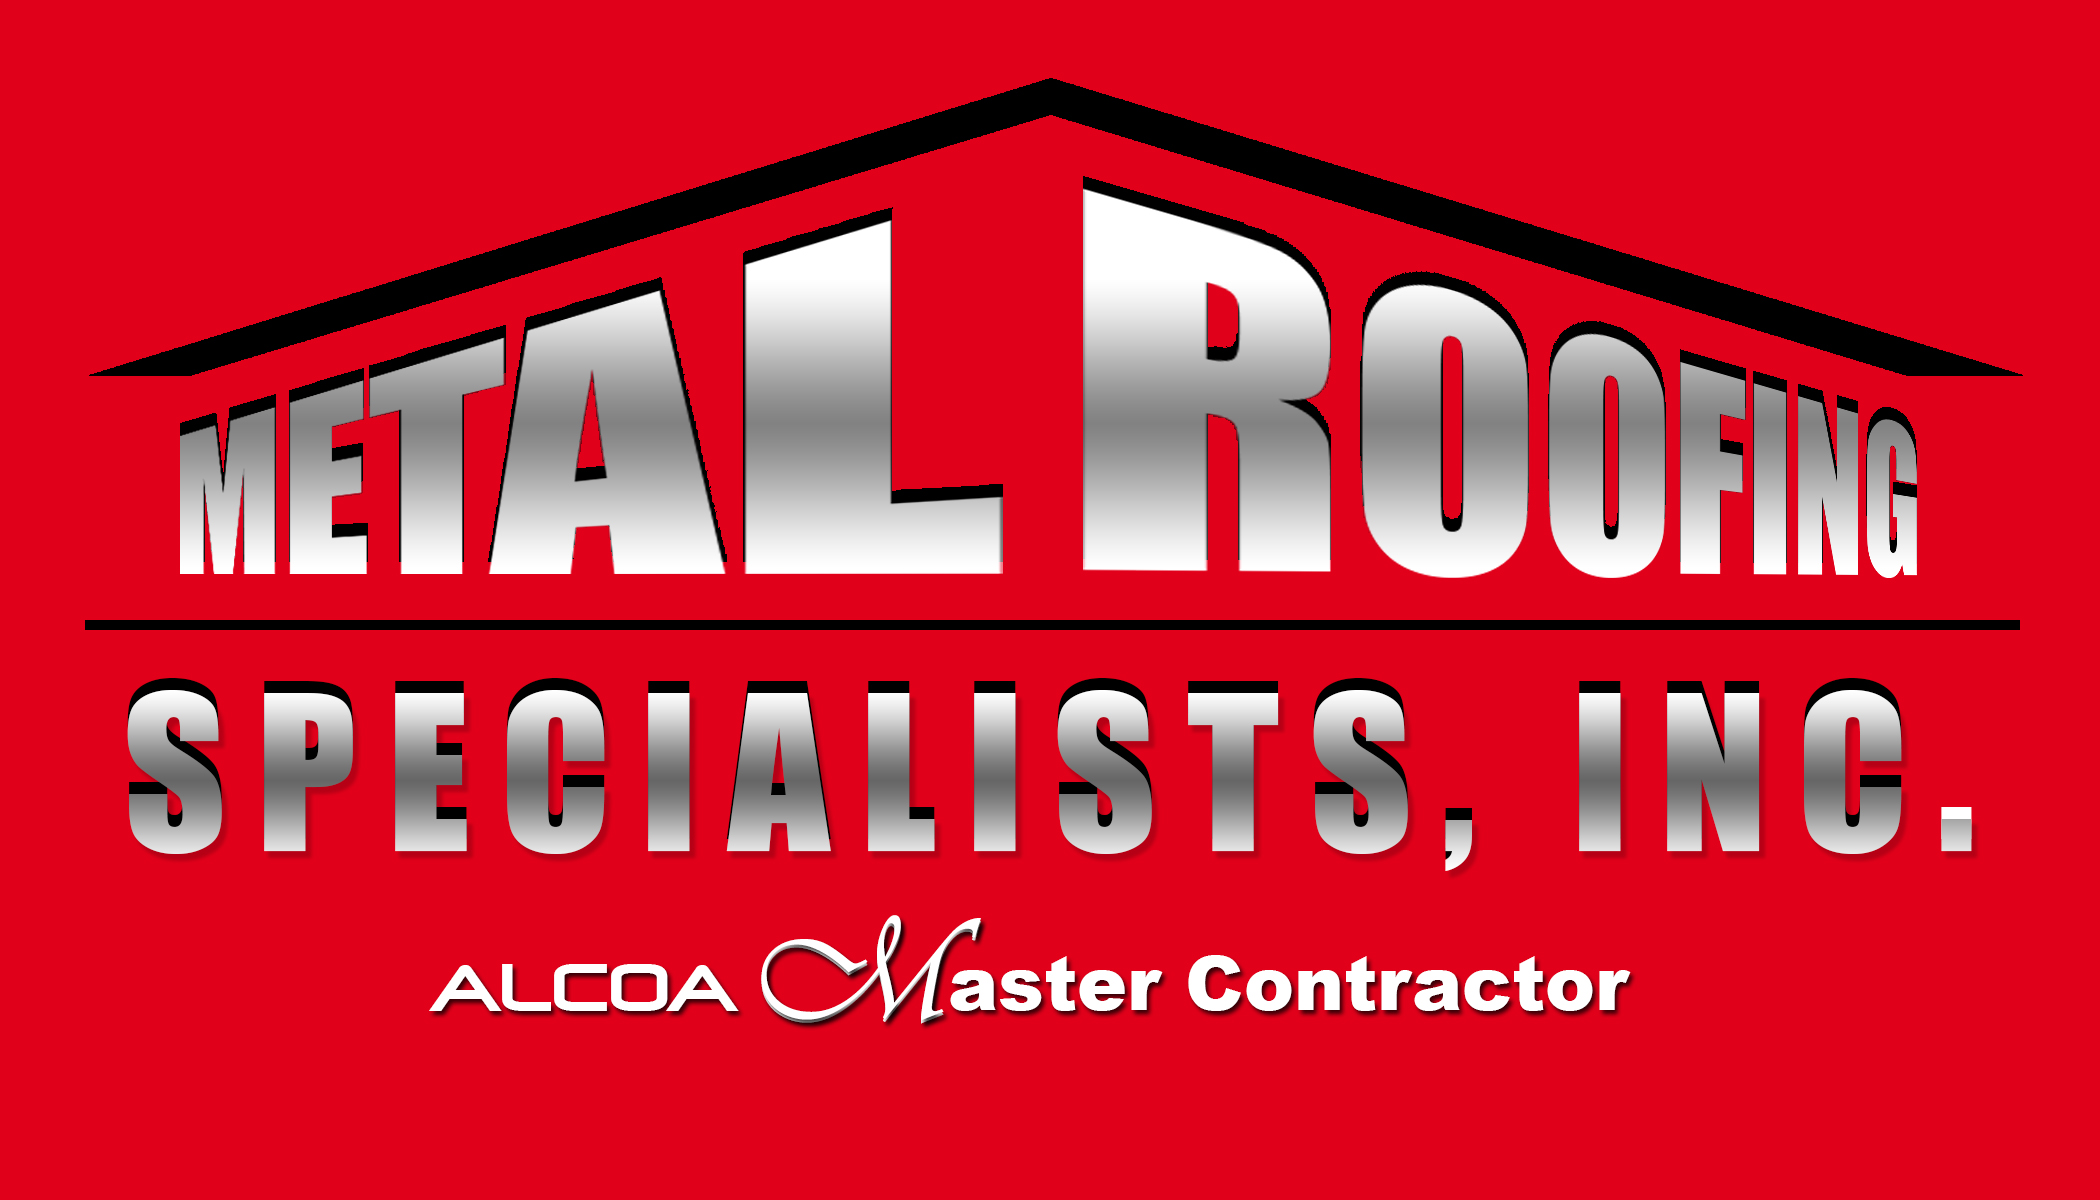 Texas Metal Roofing